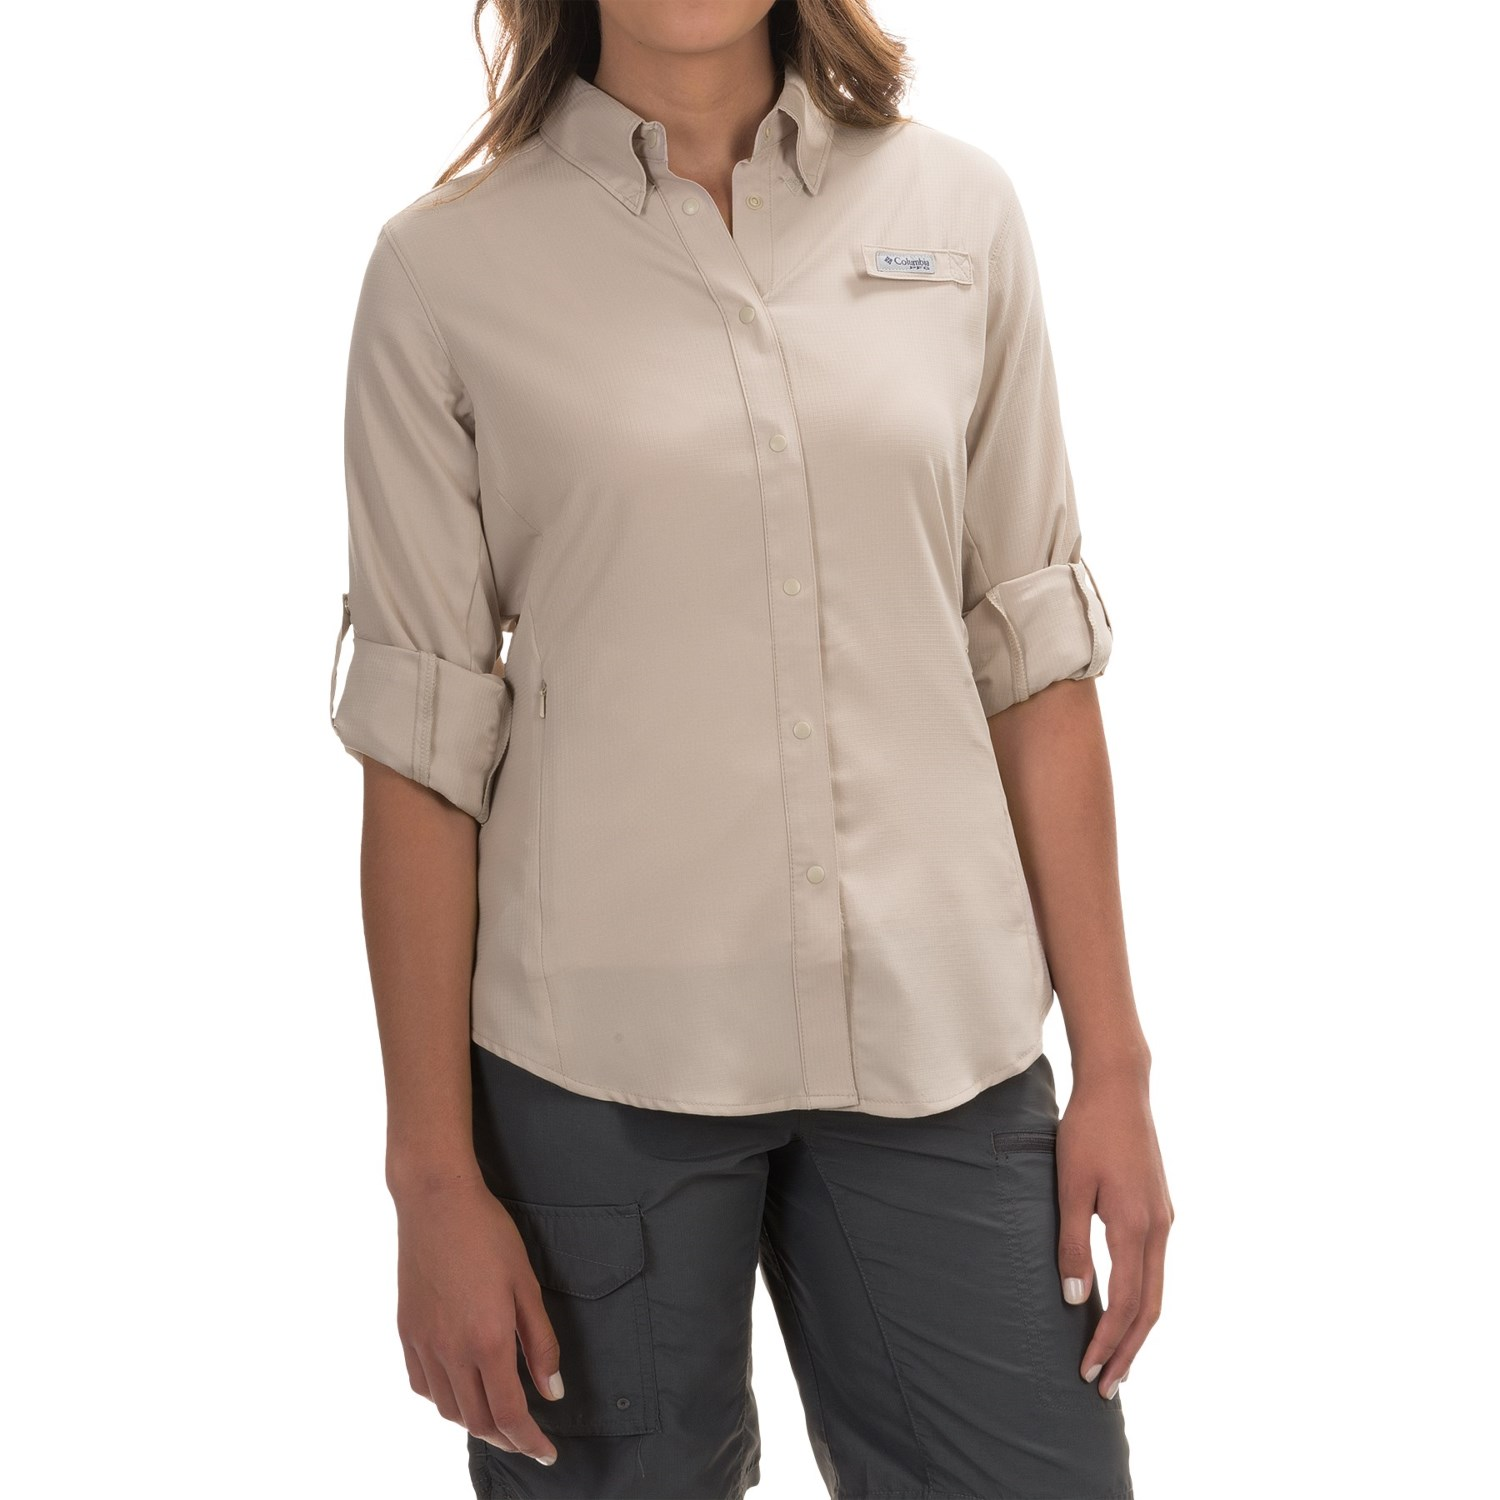 Columbia sportswear tamiami ii fishing shirt for women for Lightweight breathable long sleeve shirts